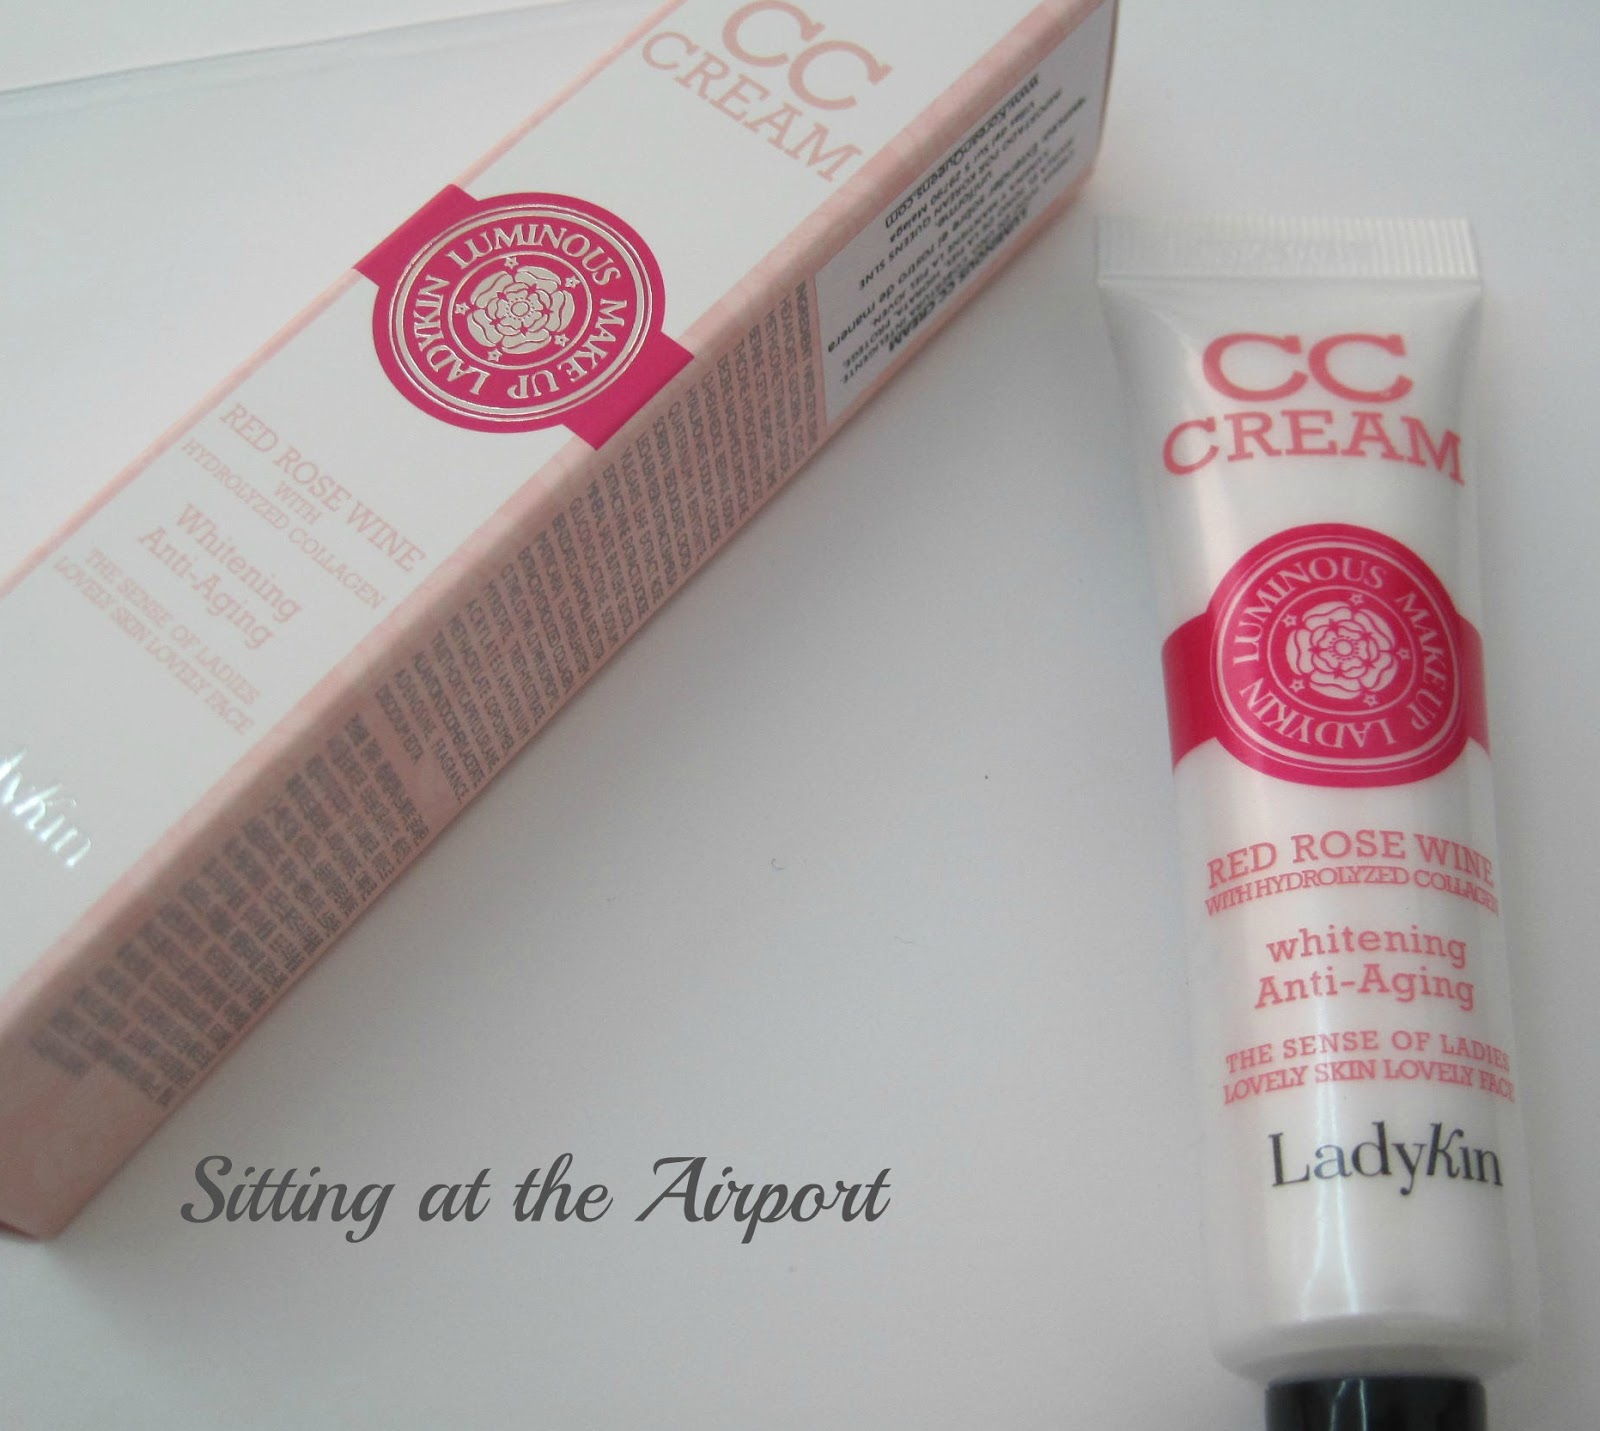 CC CREAM LUMINOUS  Ladykim